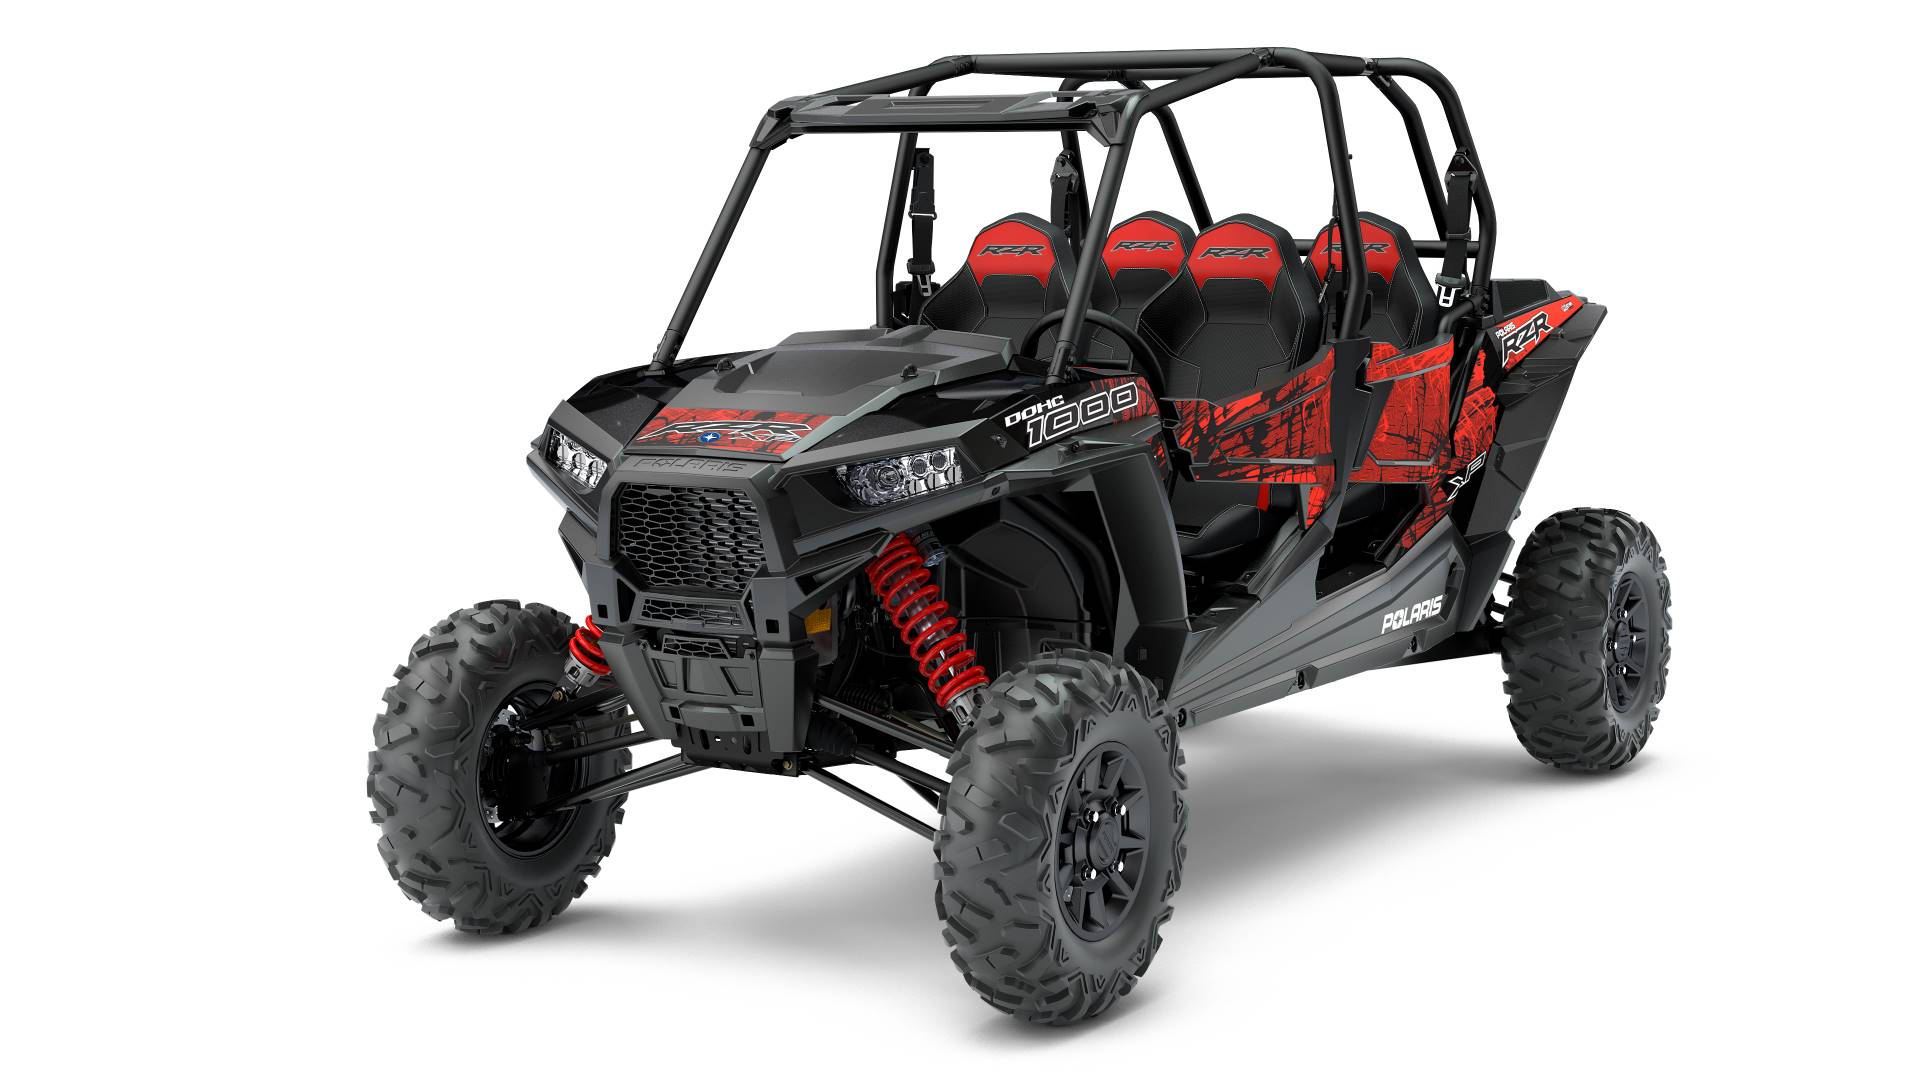 2017 Polaris RZR XP 4 1000 EPS for sale 66055